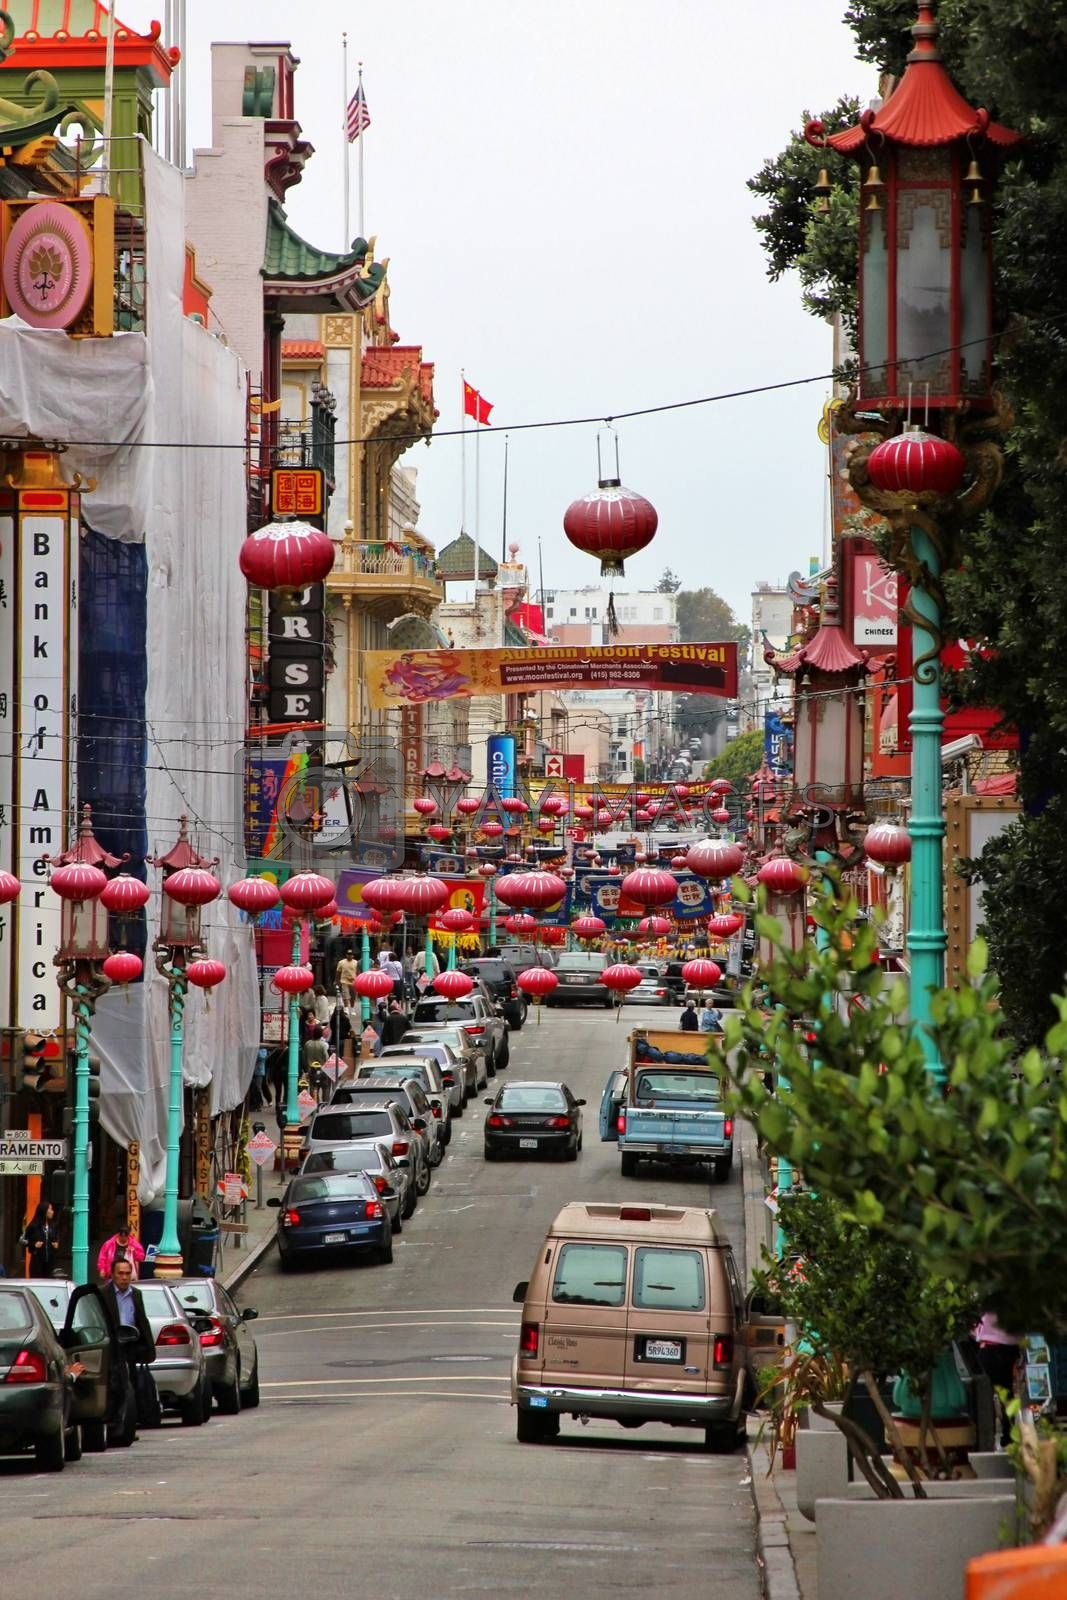 San Francisco, USA - September 15, 2011: Cars parked on the street in the Chinatown district of San Francisco.